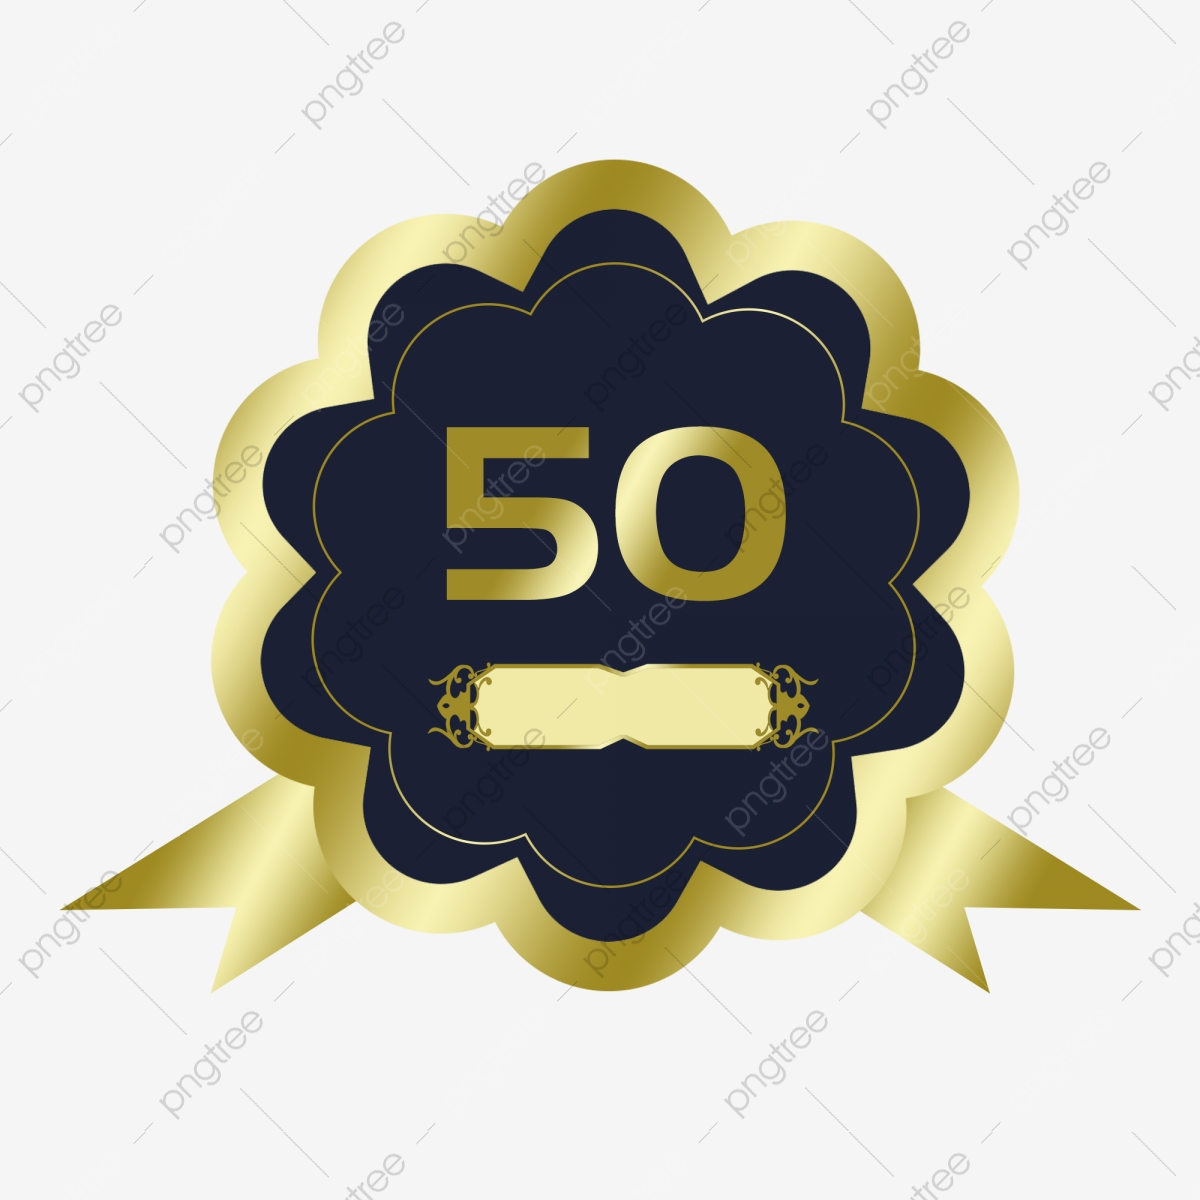 50th Anniversary Png Vector Psd And Clipart With Transparent Background For Free Download Pngtree